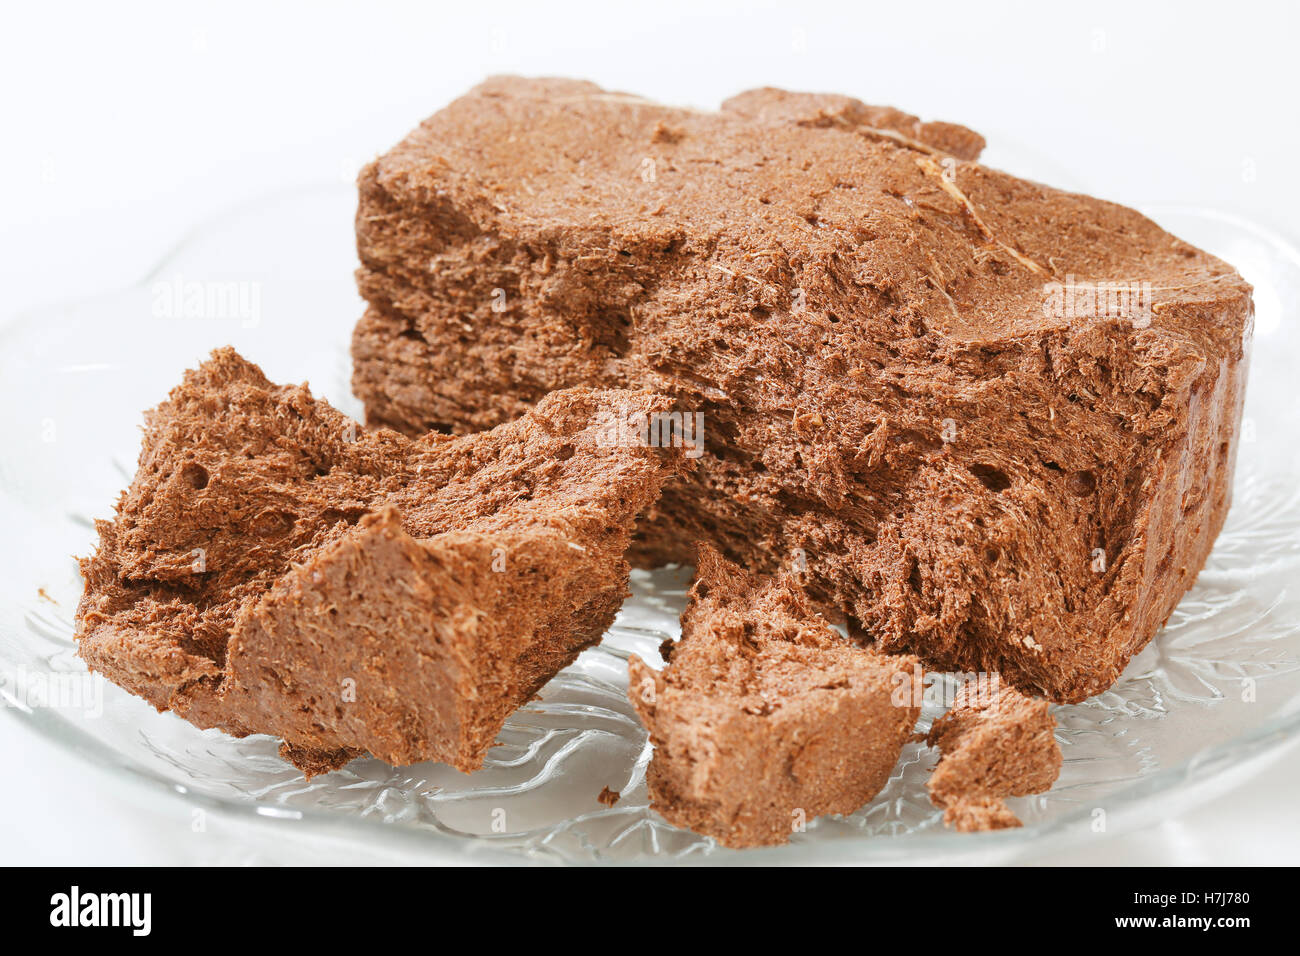 Pieces of chocolate halva on a plate - Stock Image